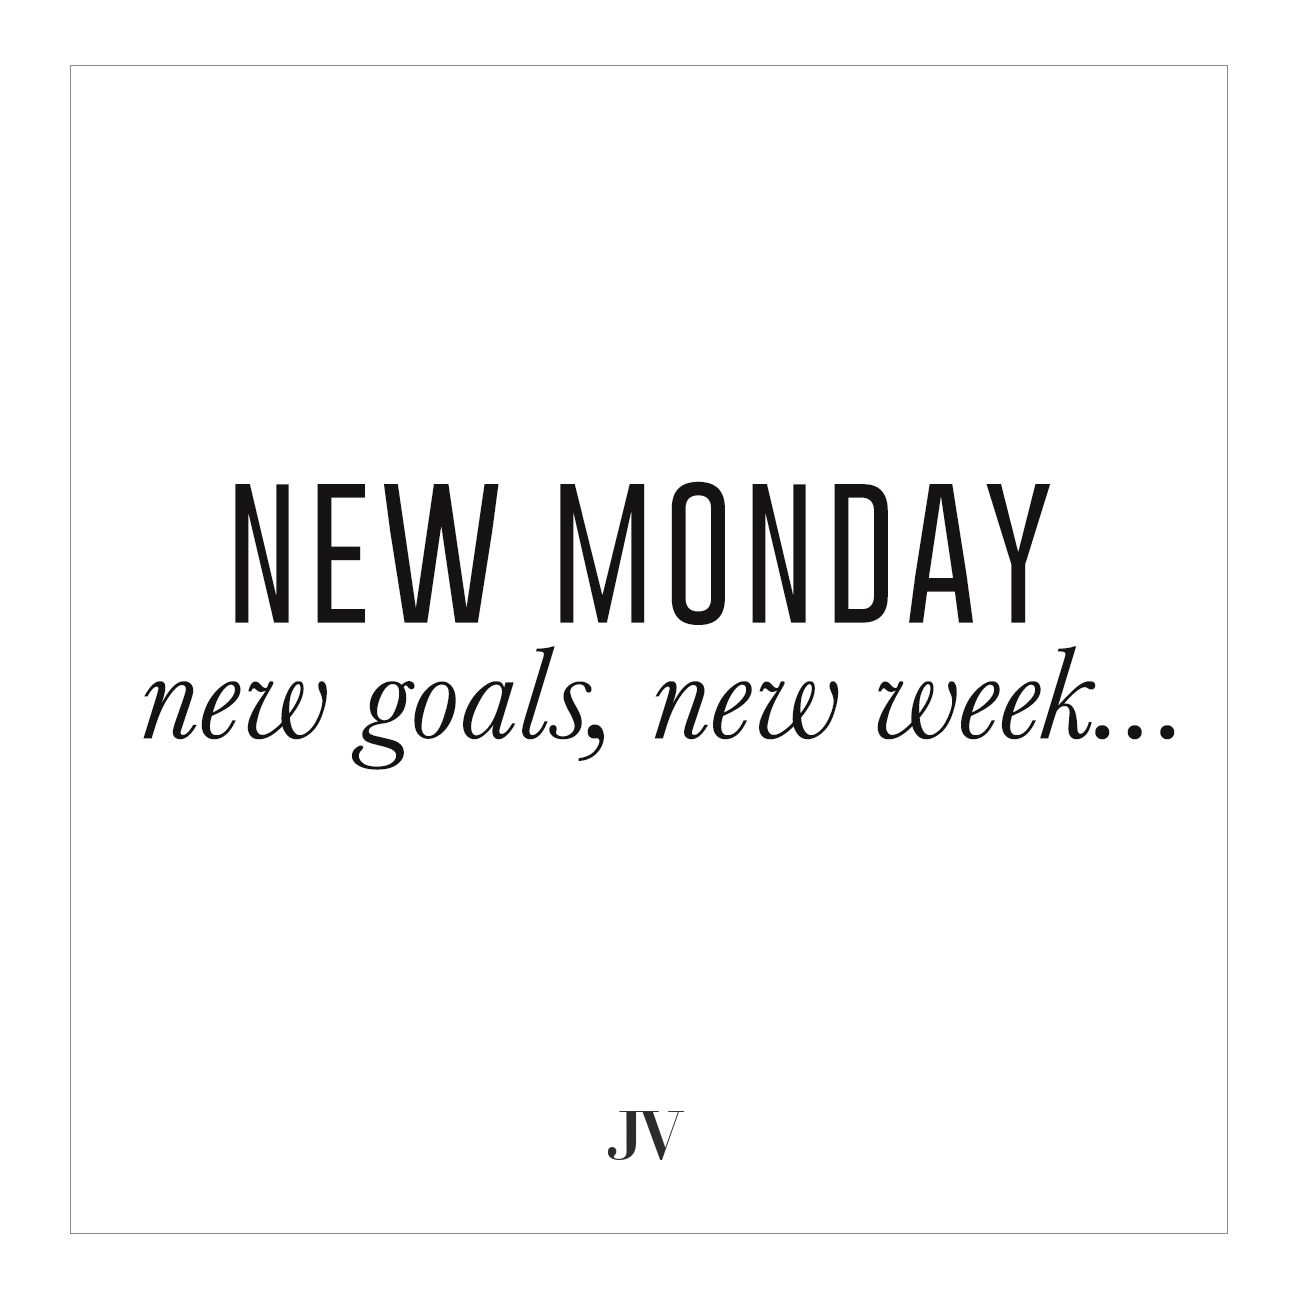 Week Quotes Best Josh V  New Monday New Goals New Week  Quote  Days Of The Week